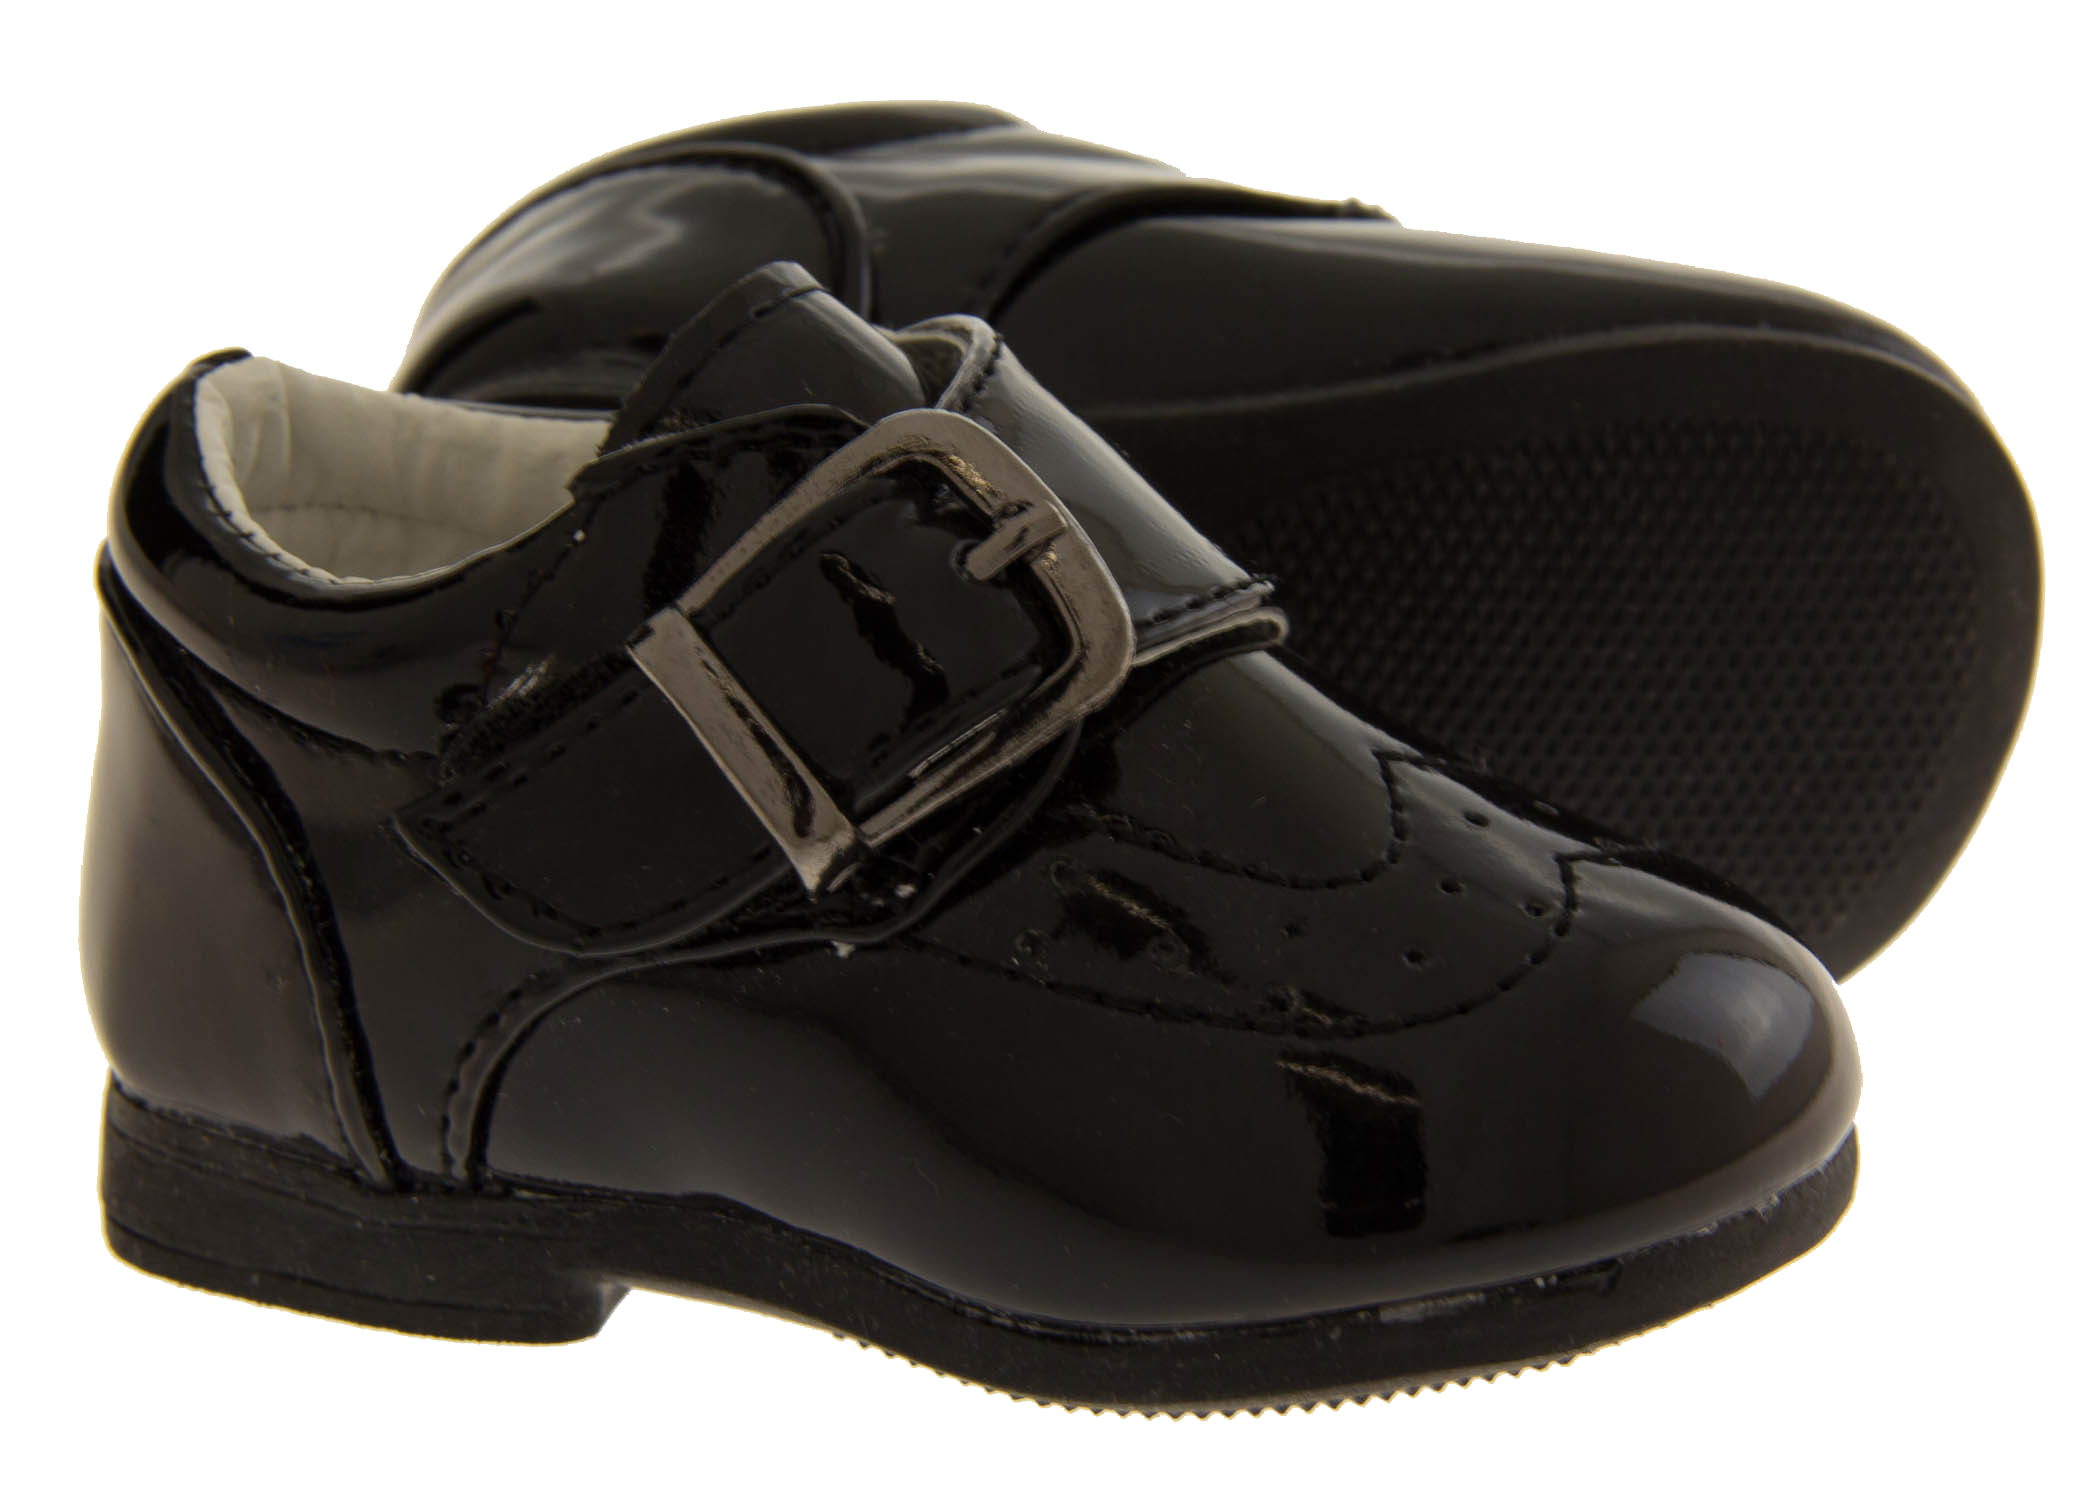 83cf6ce050fc Sentinel New Baby Boys Infant Black Smart Buckle Shoes Wedding Party  Christening Size 0